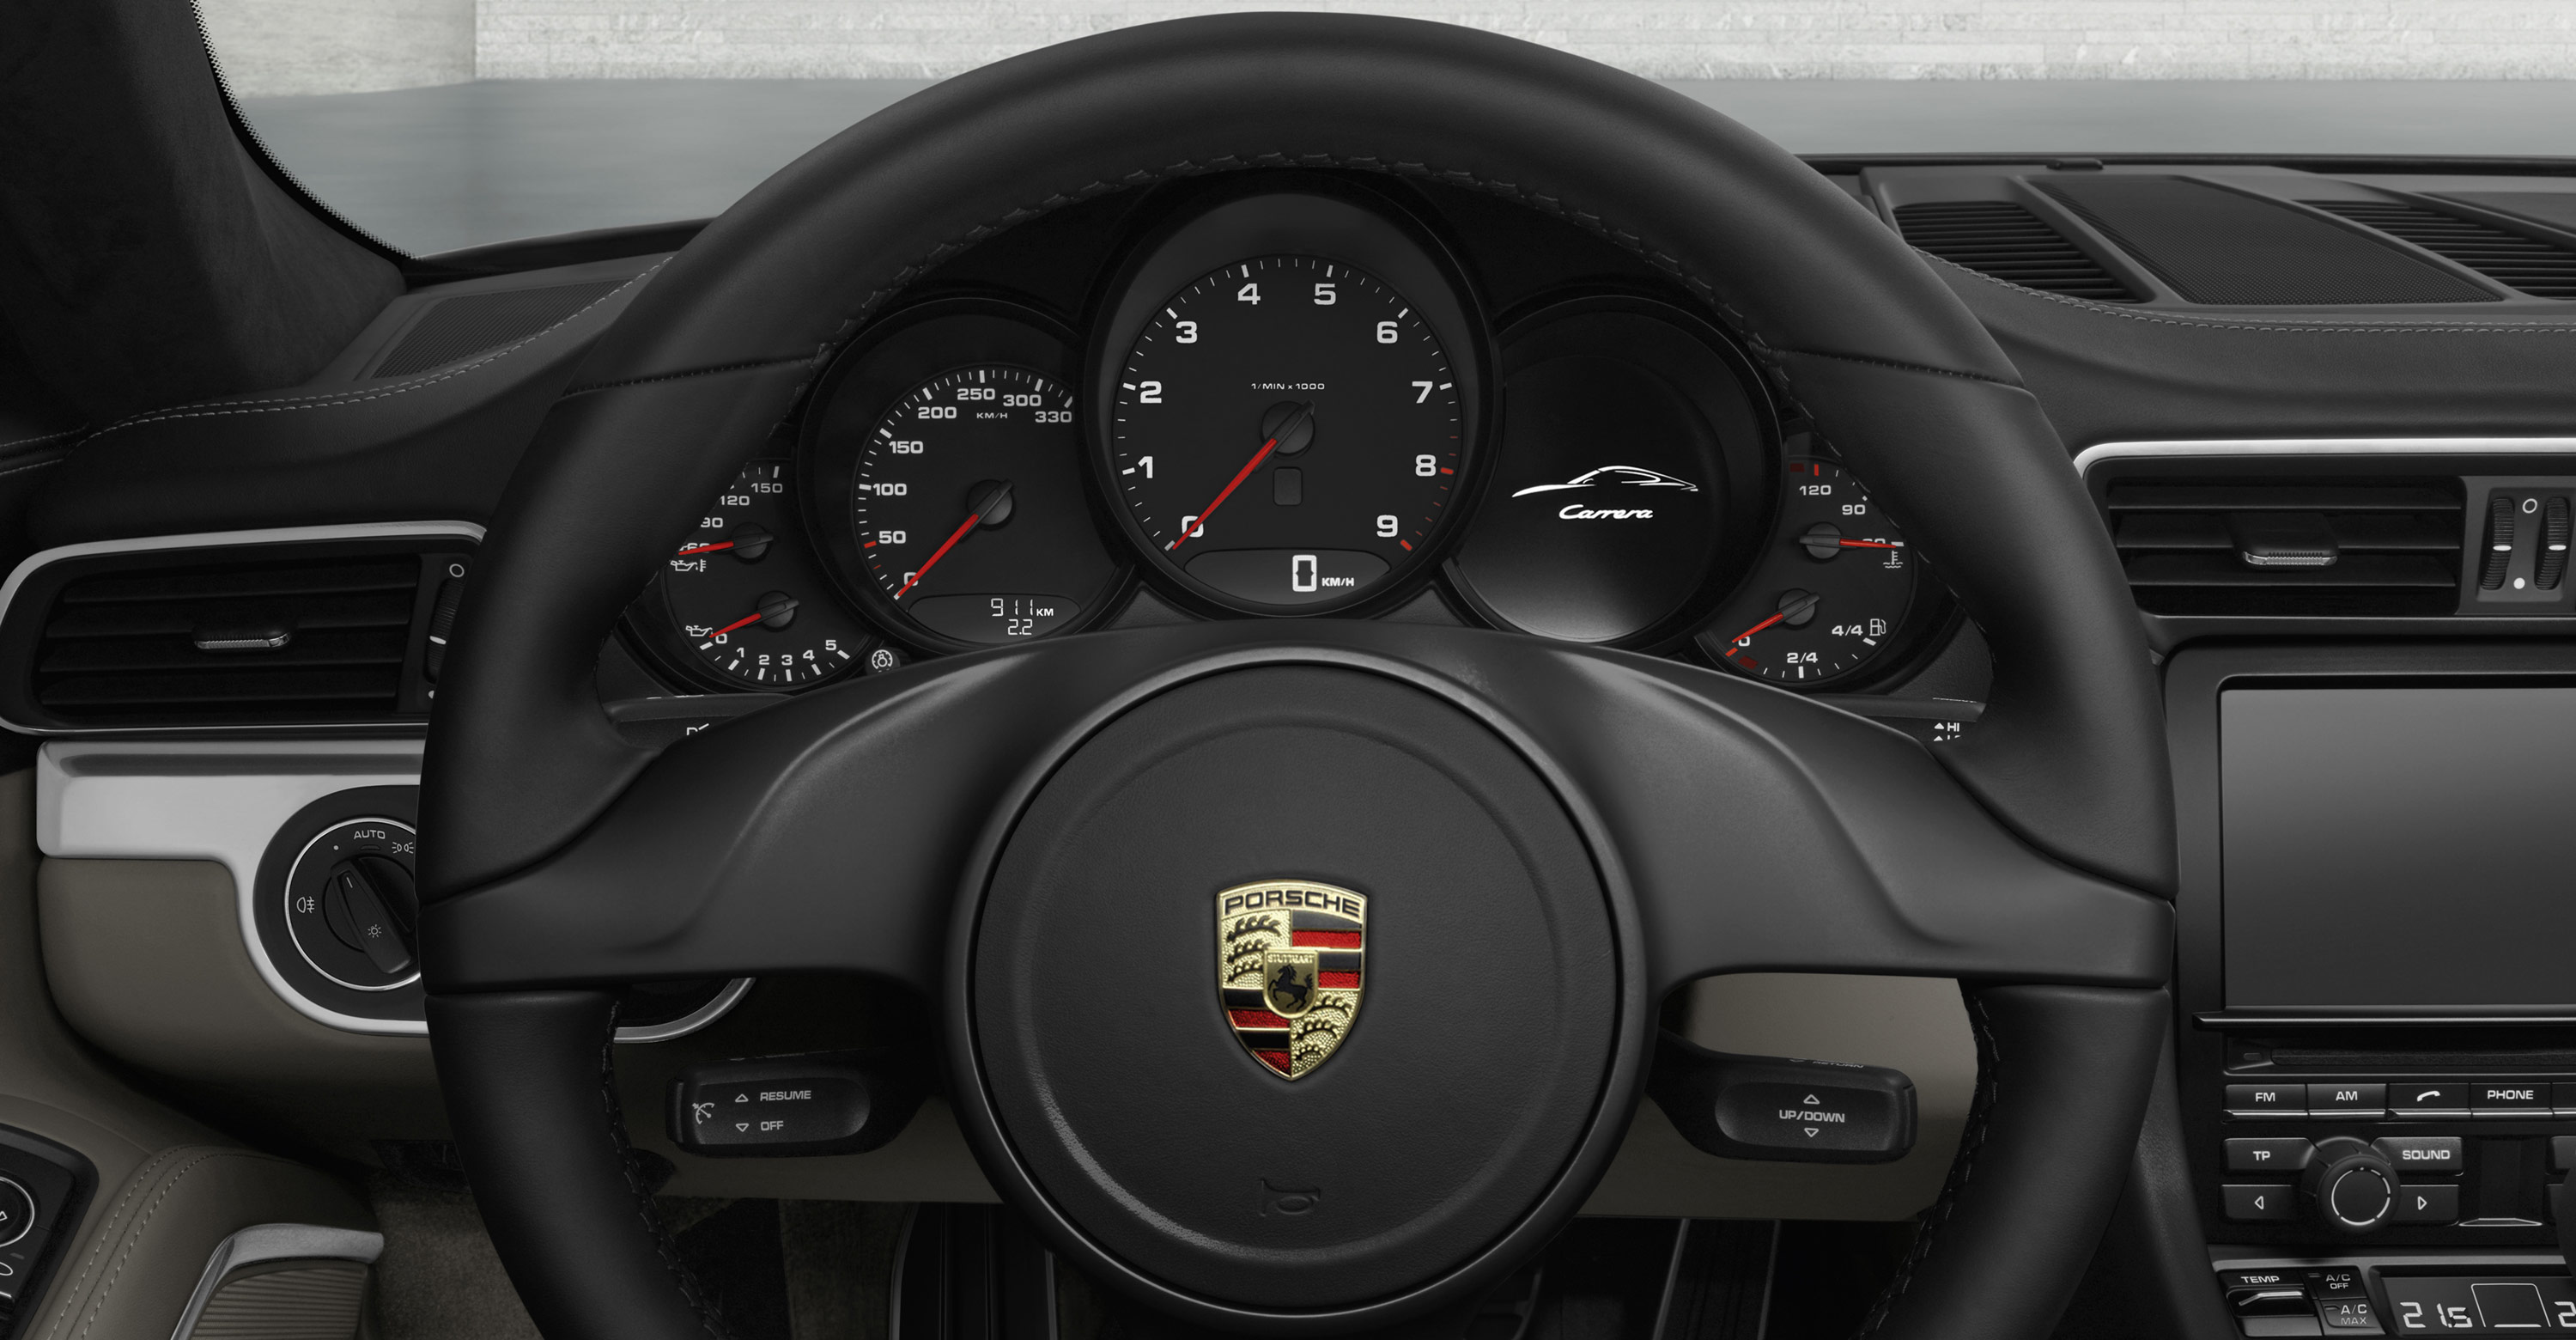 2012 Porsche 911 Carrera Cabriolet - Interior, Steering wheel